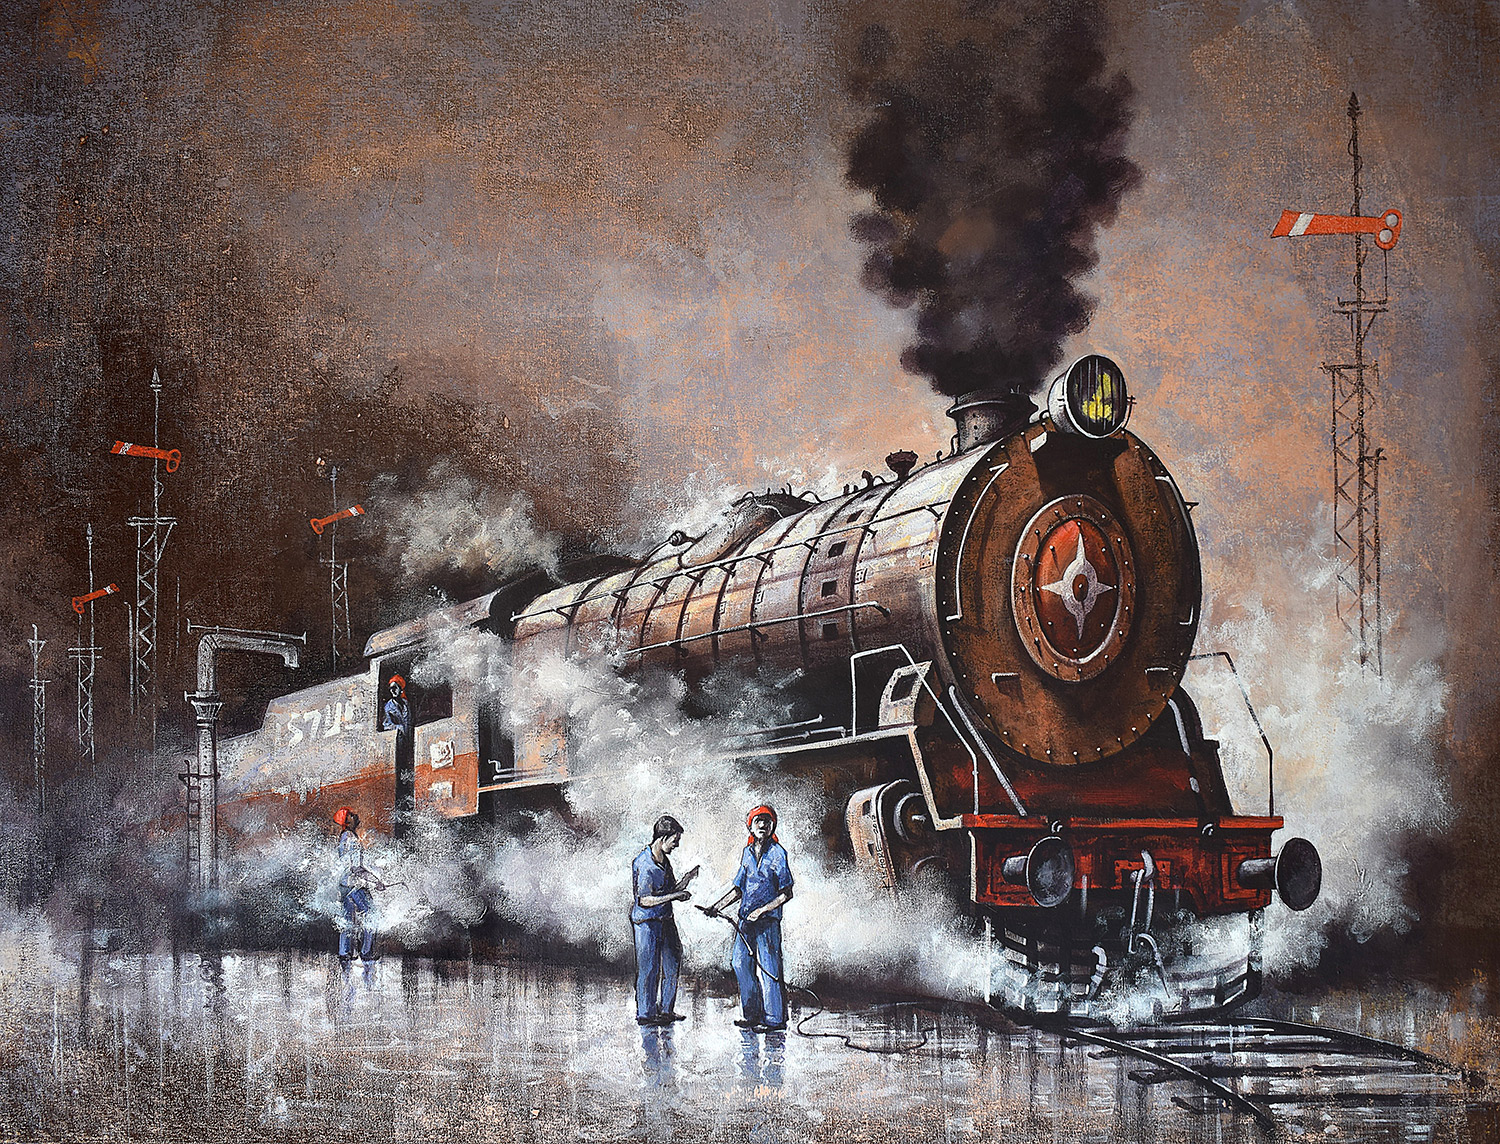 Nostalgia of Indian steam locomotives 18 14723